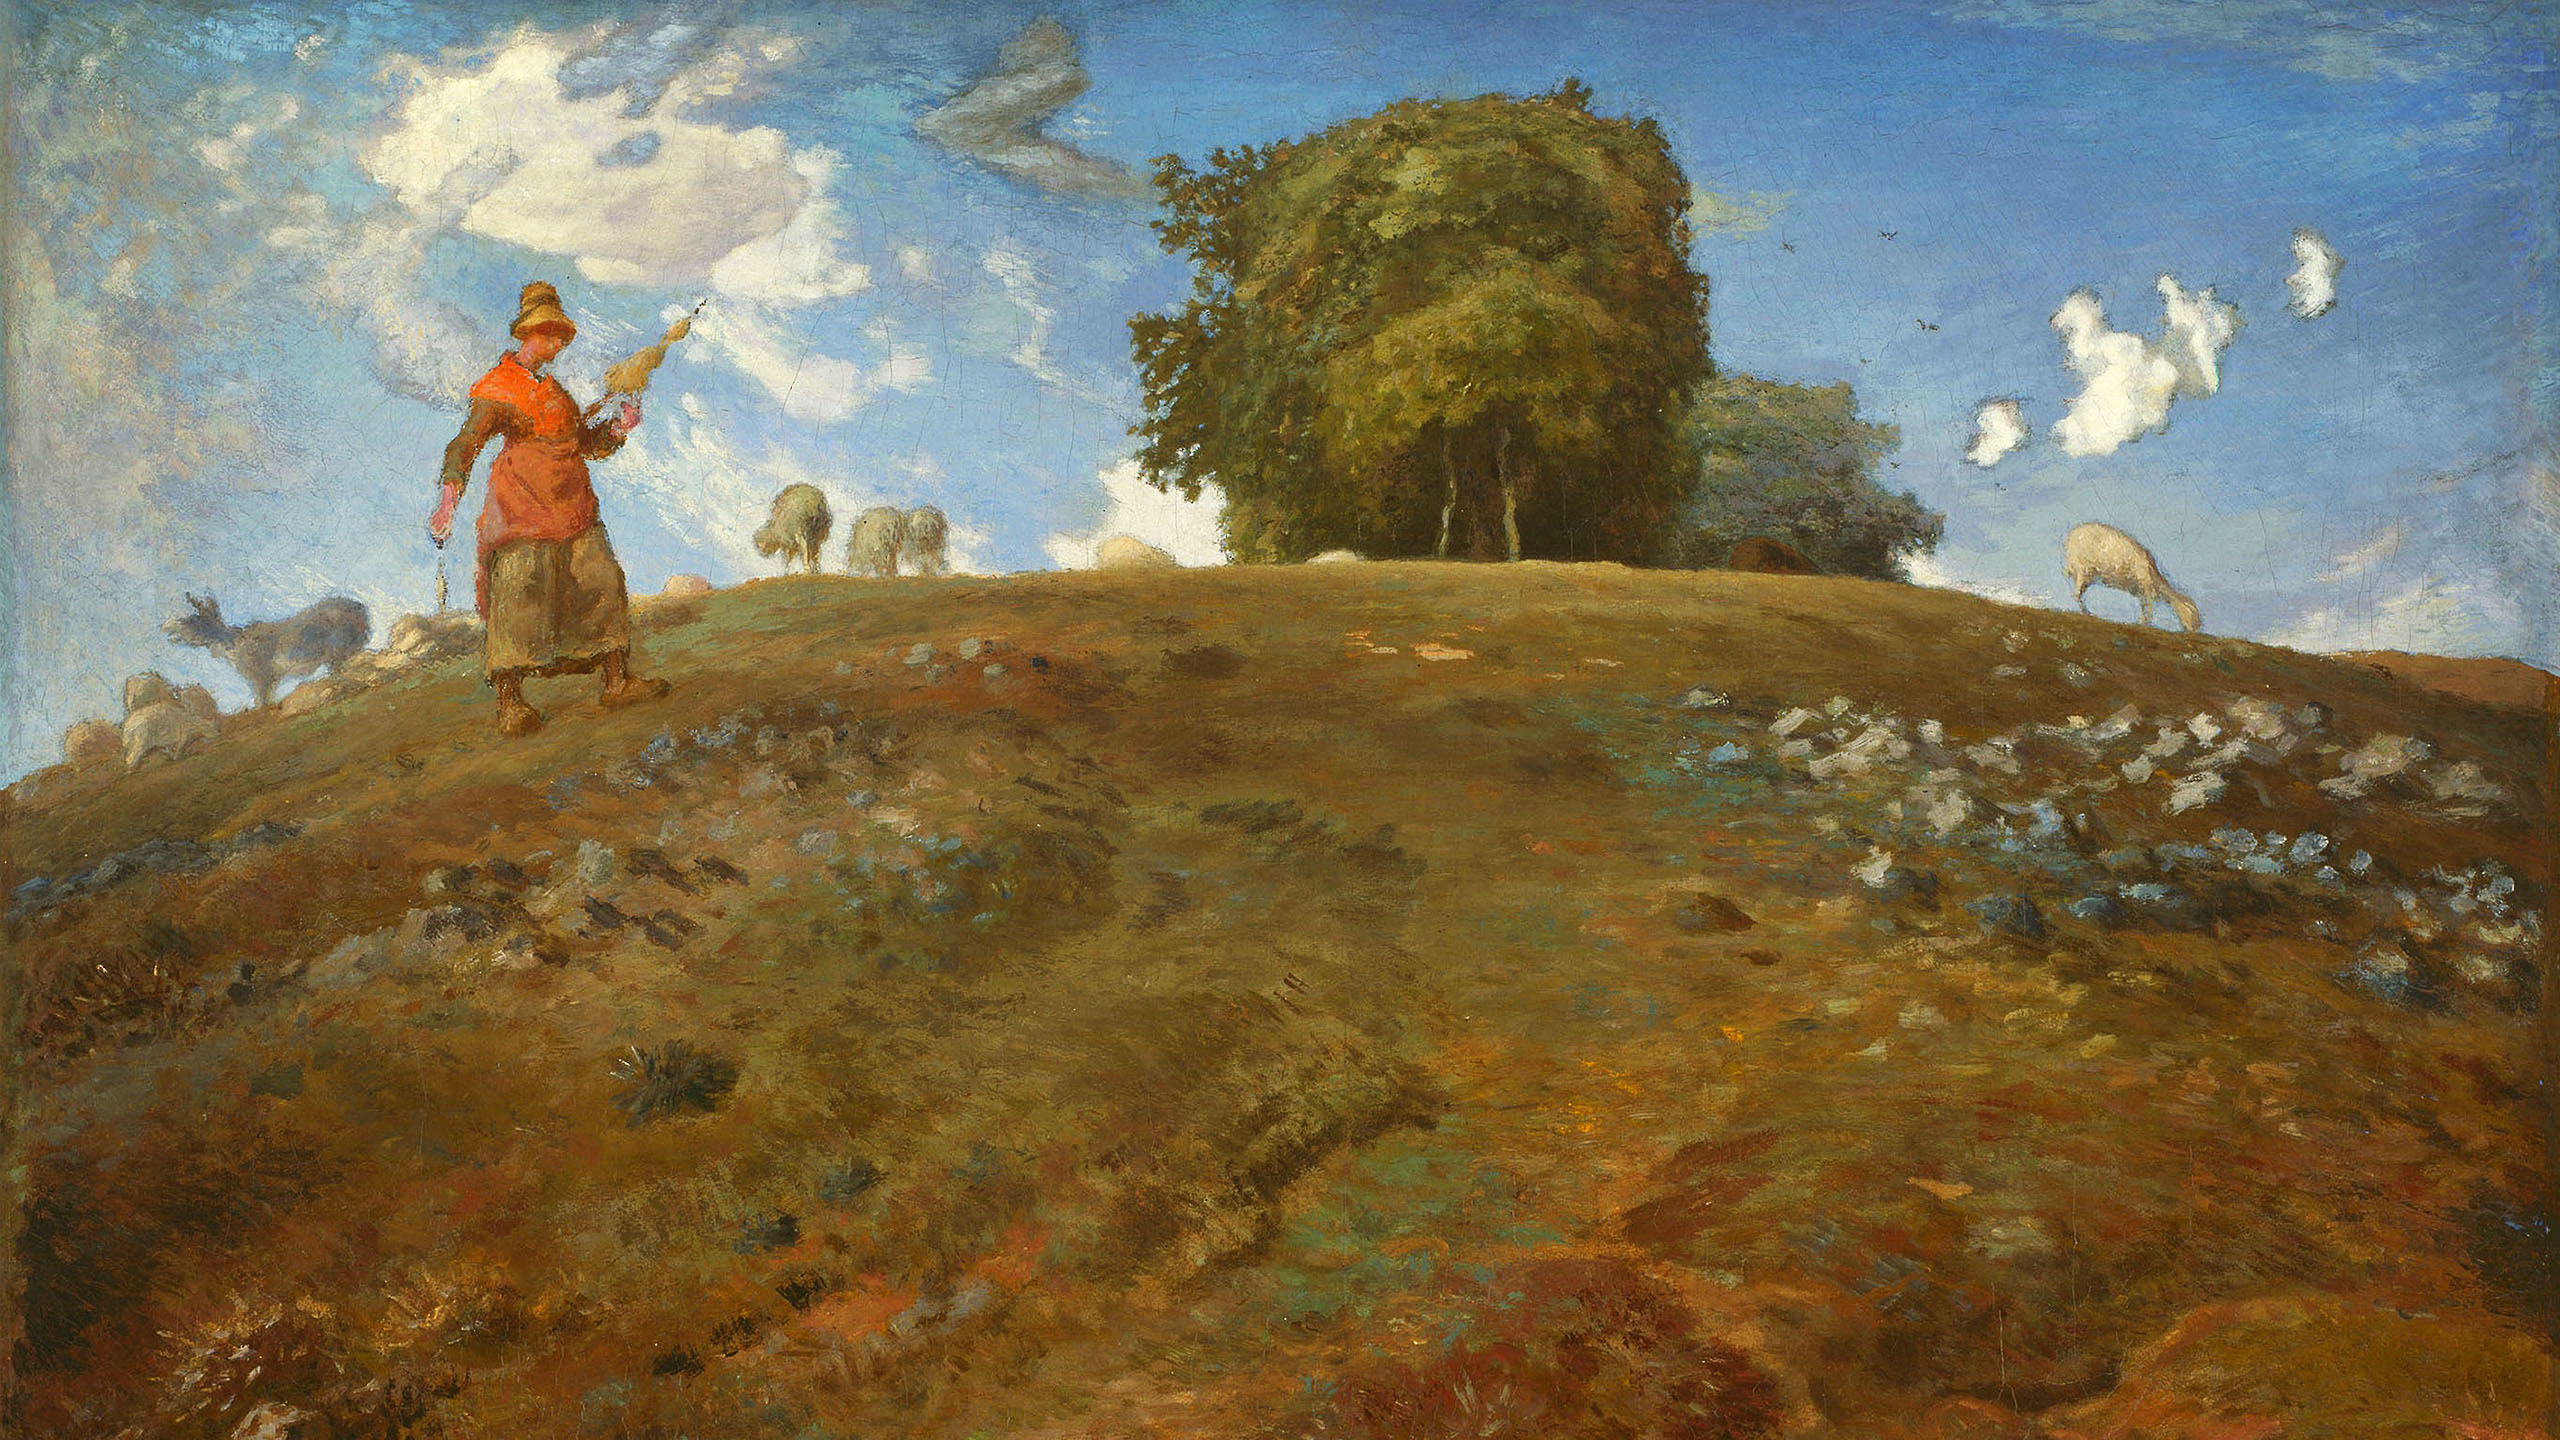 Jean-François Millet - In the auvergne 2560x1440